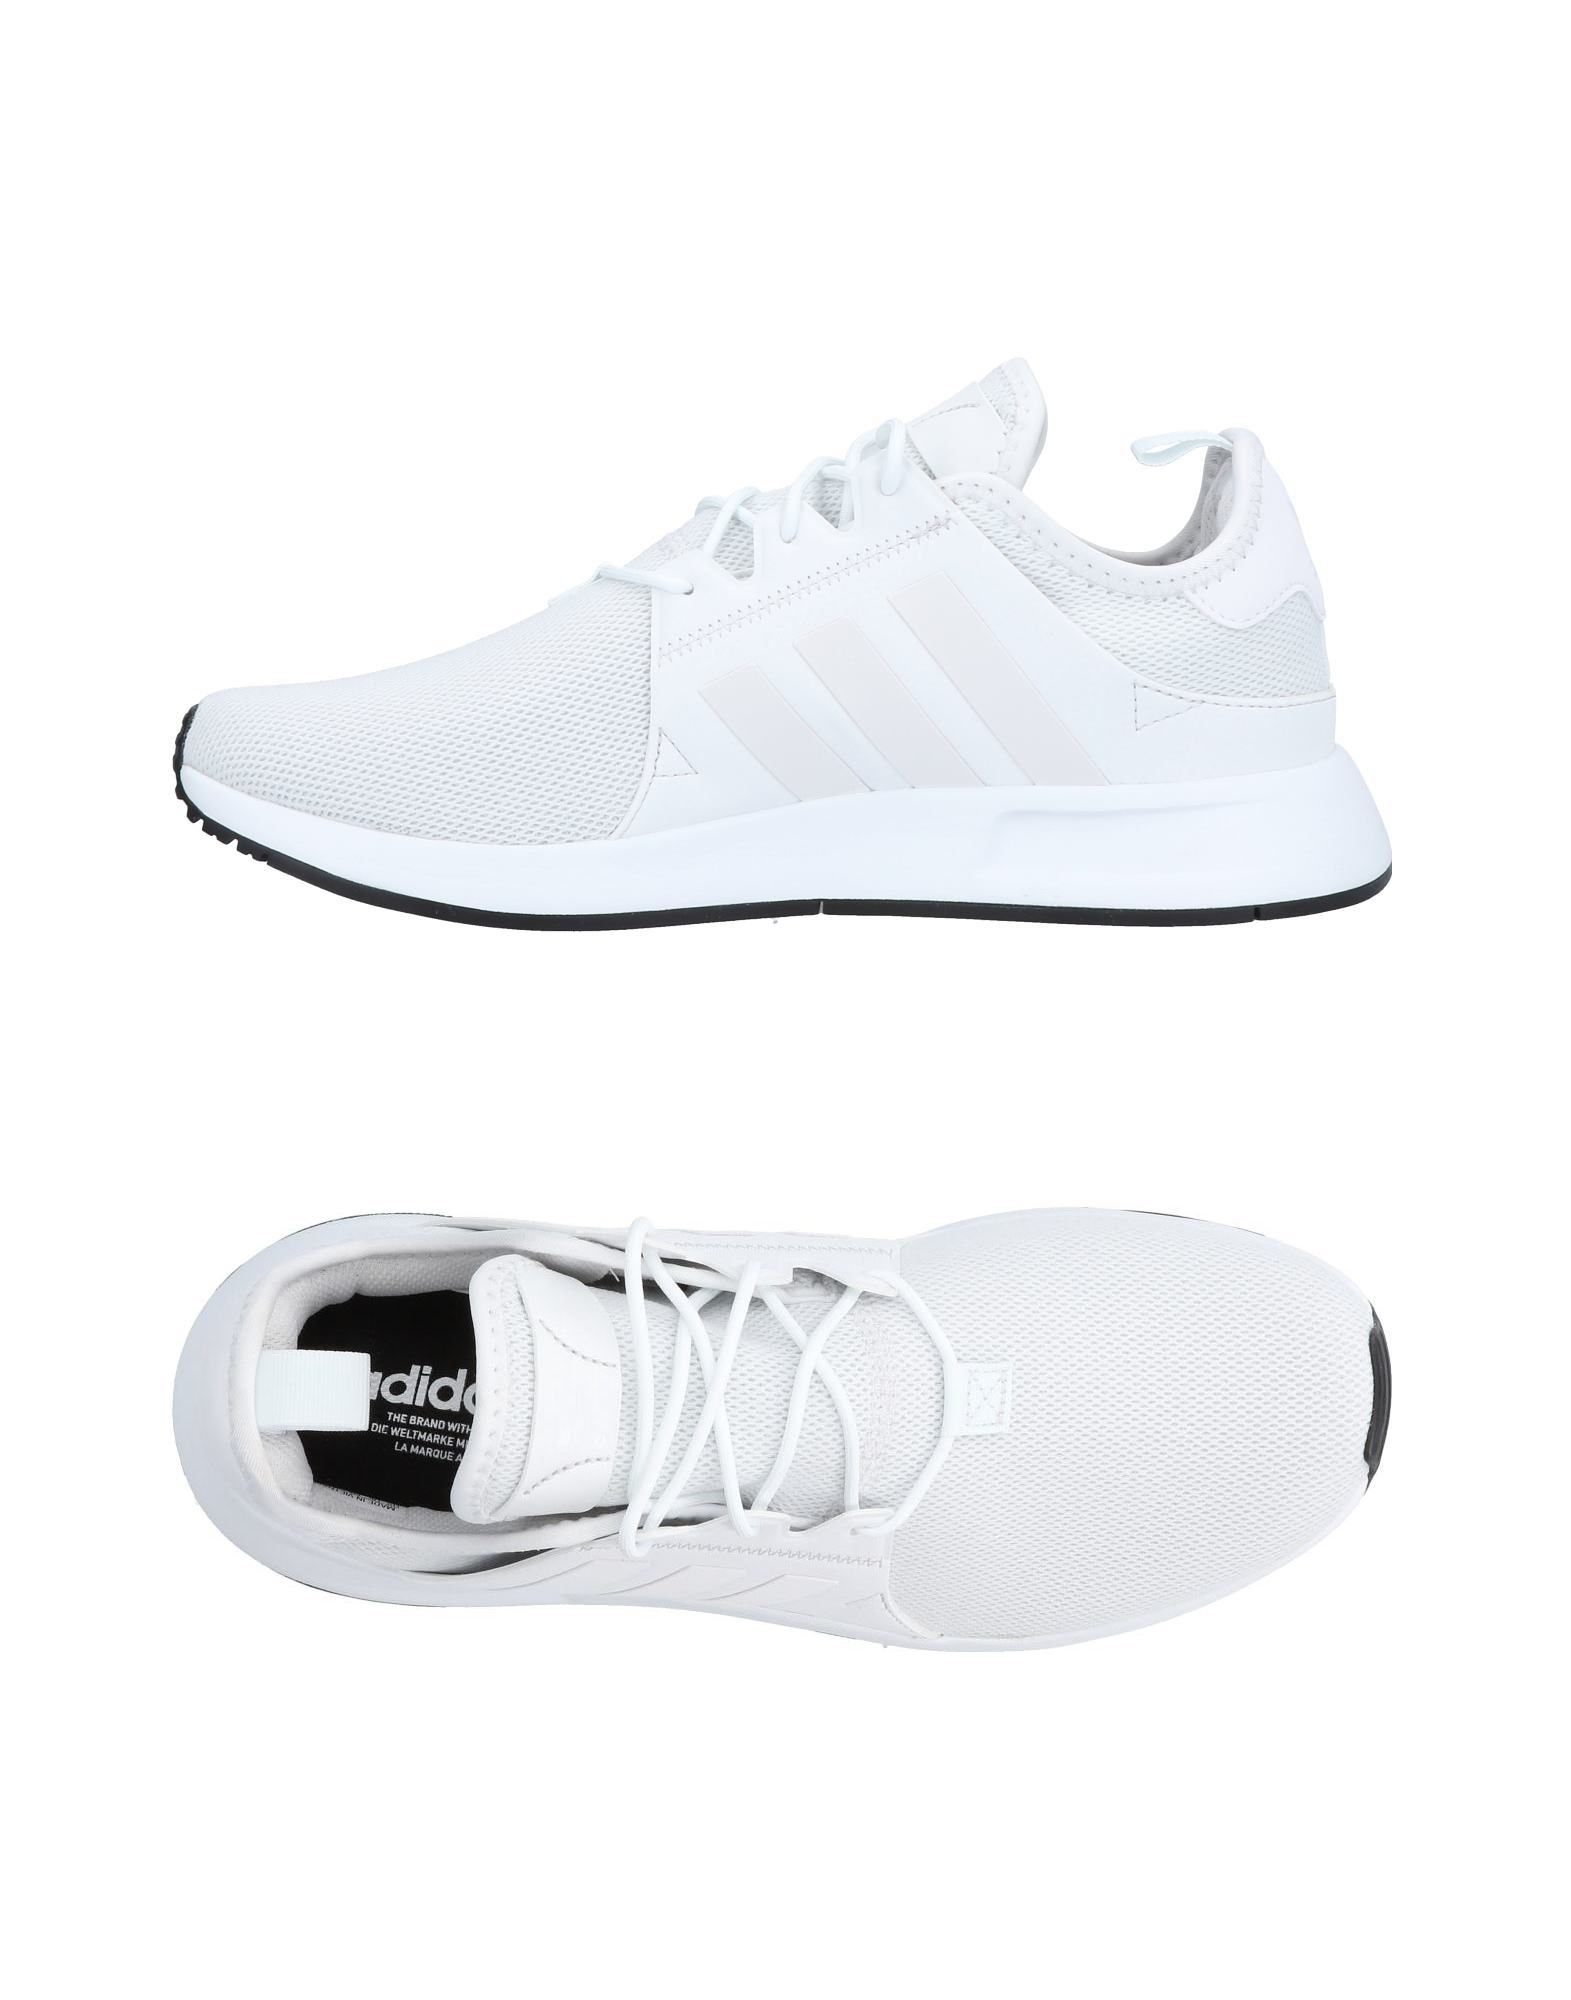 e4cb9acd1fcc Adidas Originals Originals Originals Sneakers - Men Adidas Originals  Sneakers online on Australia - 11462386AS 626613